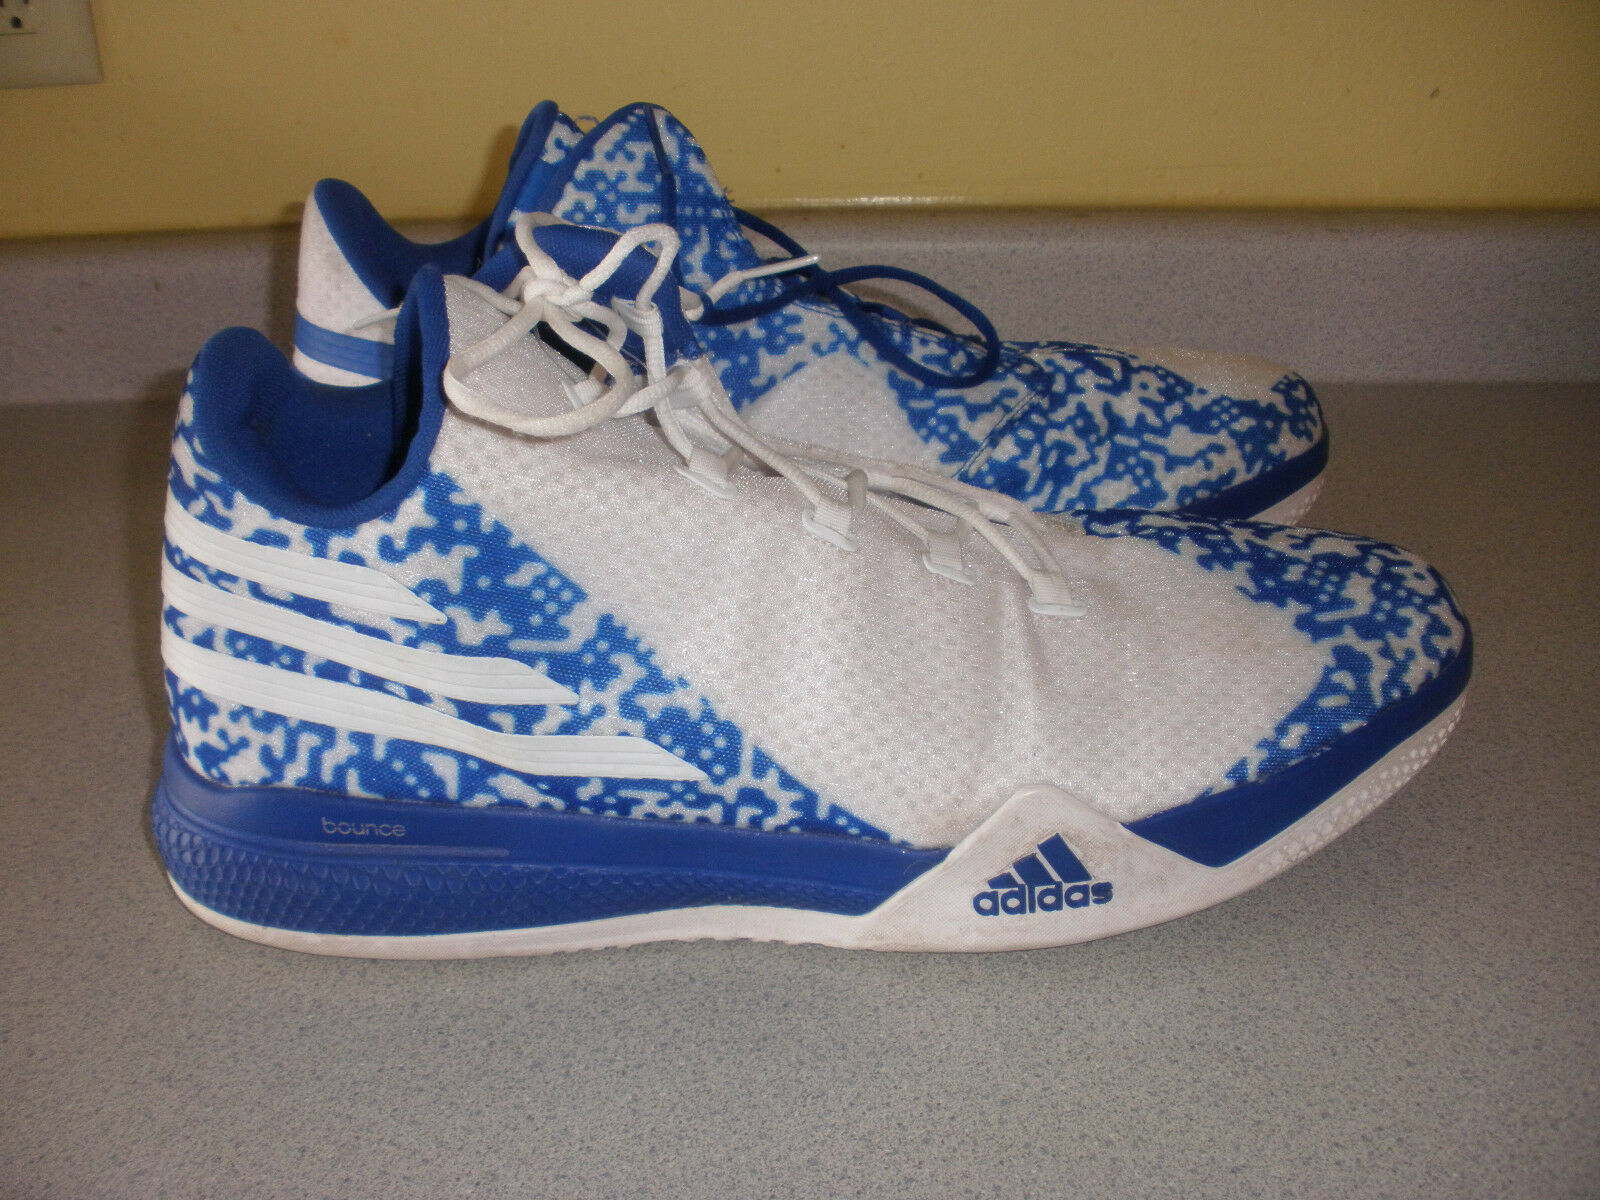 Men's ADIDAS Bounce Basketball Sneakers 20 BLUE WHITE best-selling model of the brand